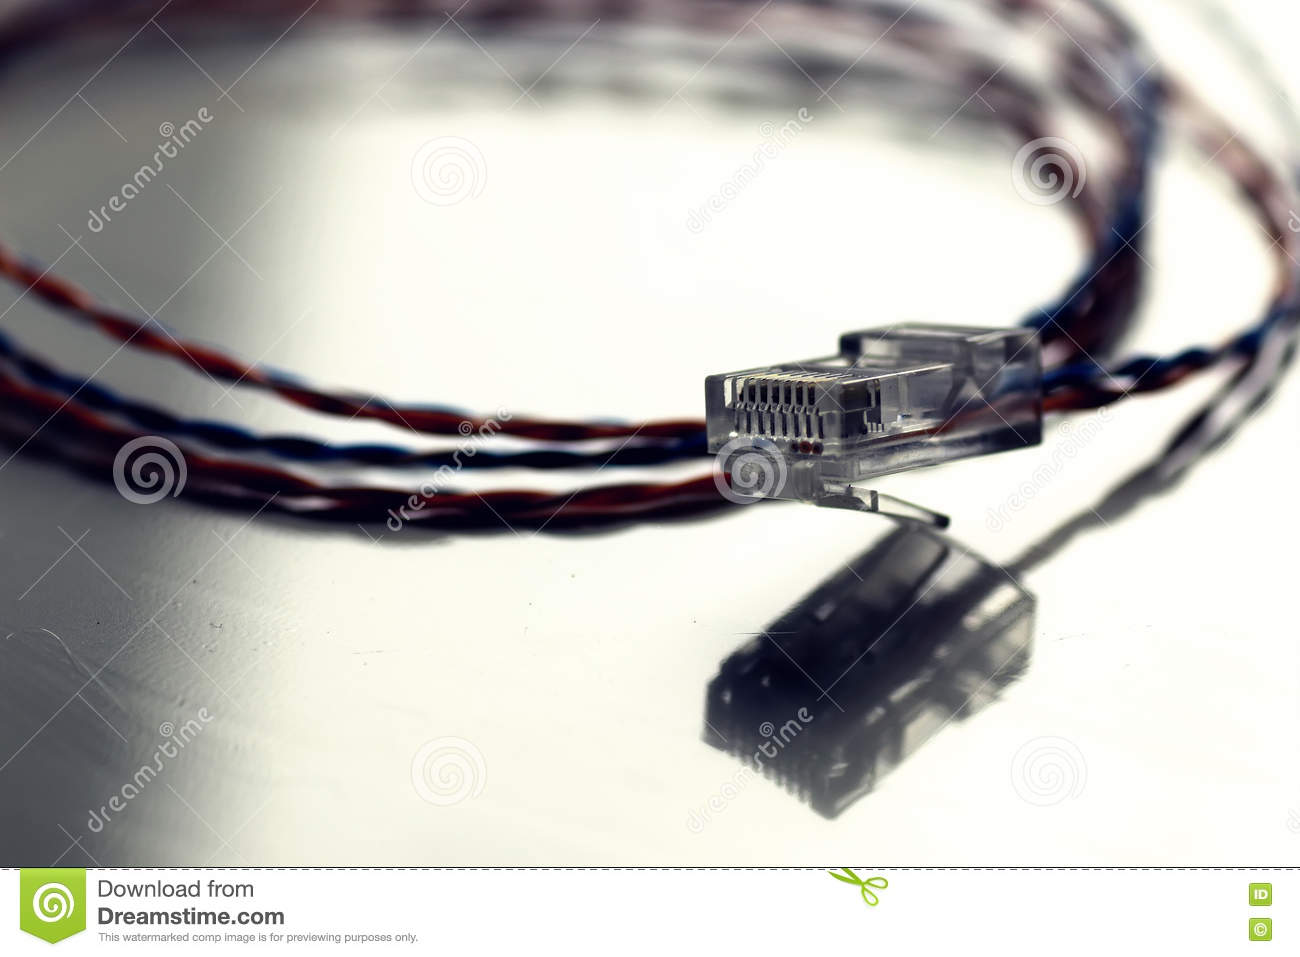 Sensational Plug Wire Color Lan Stock Image Image Of Fibre Colorful 79273273 Wiring 101 Olytiaxxcnl